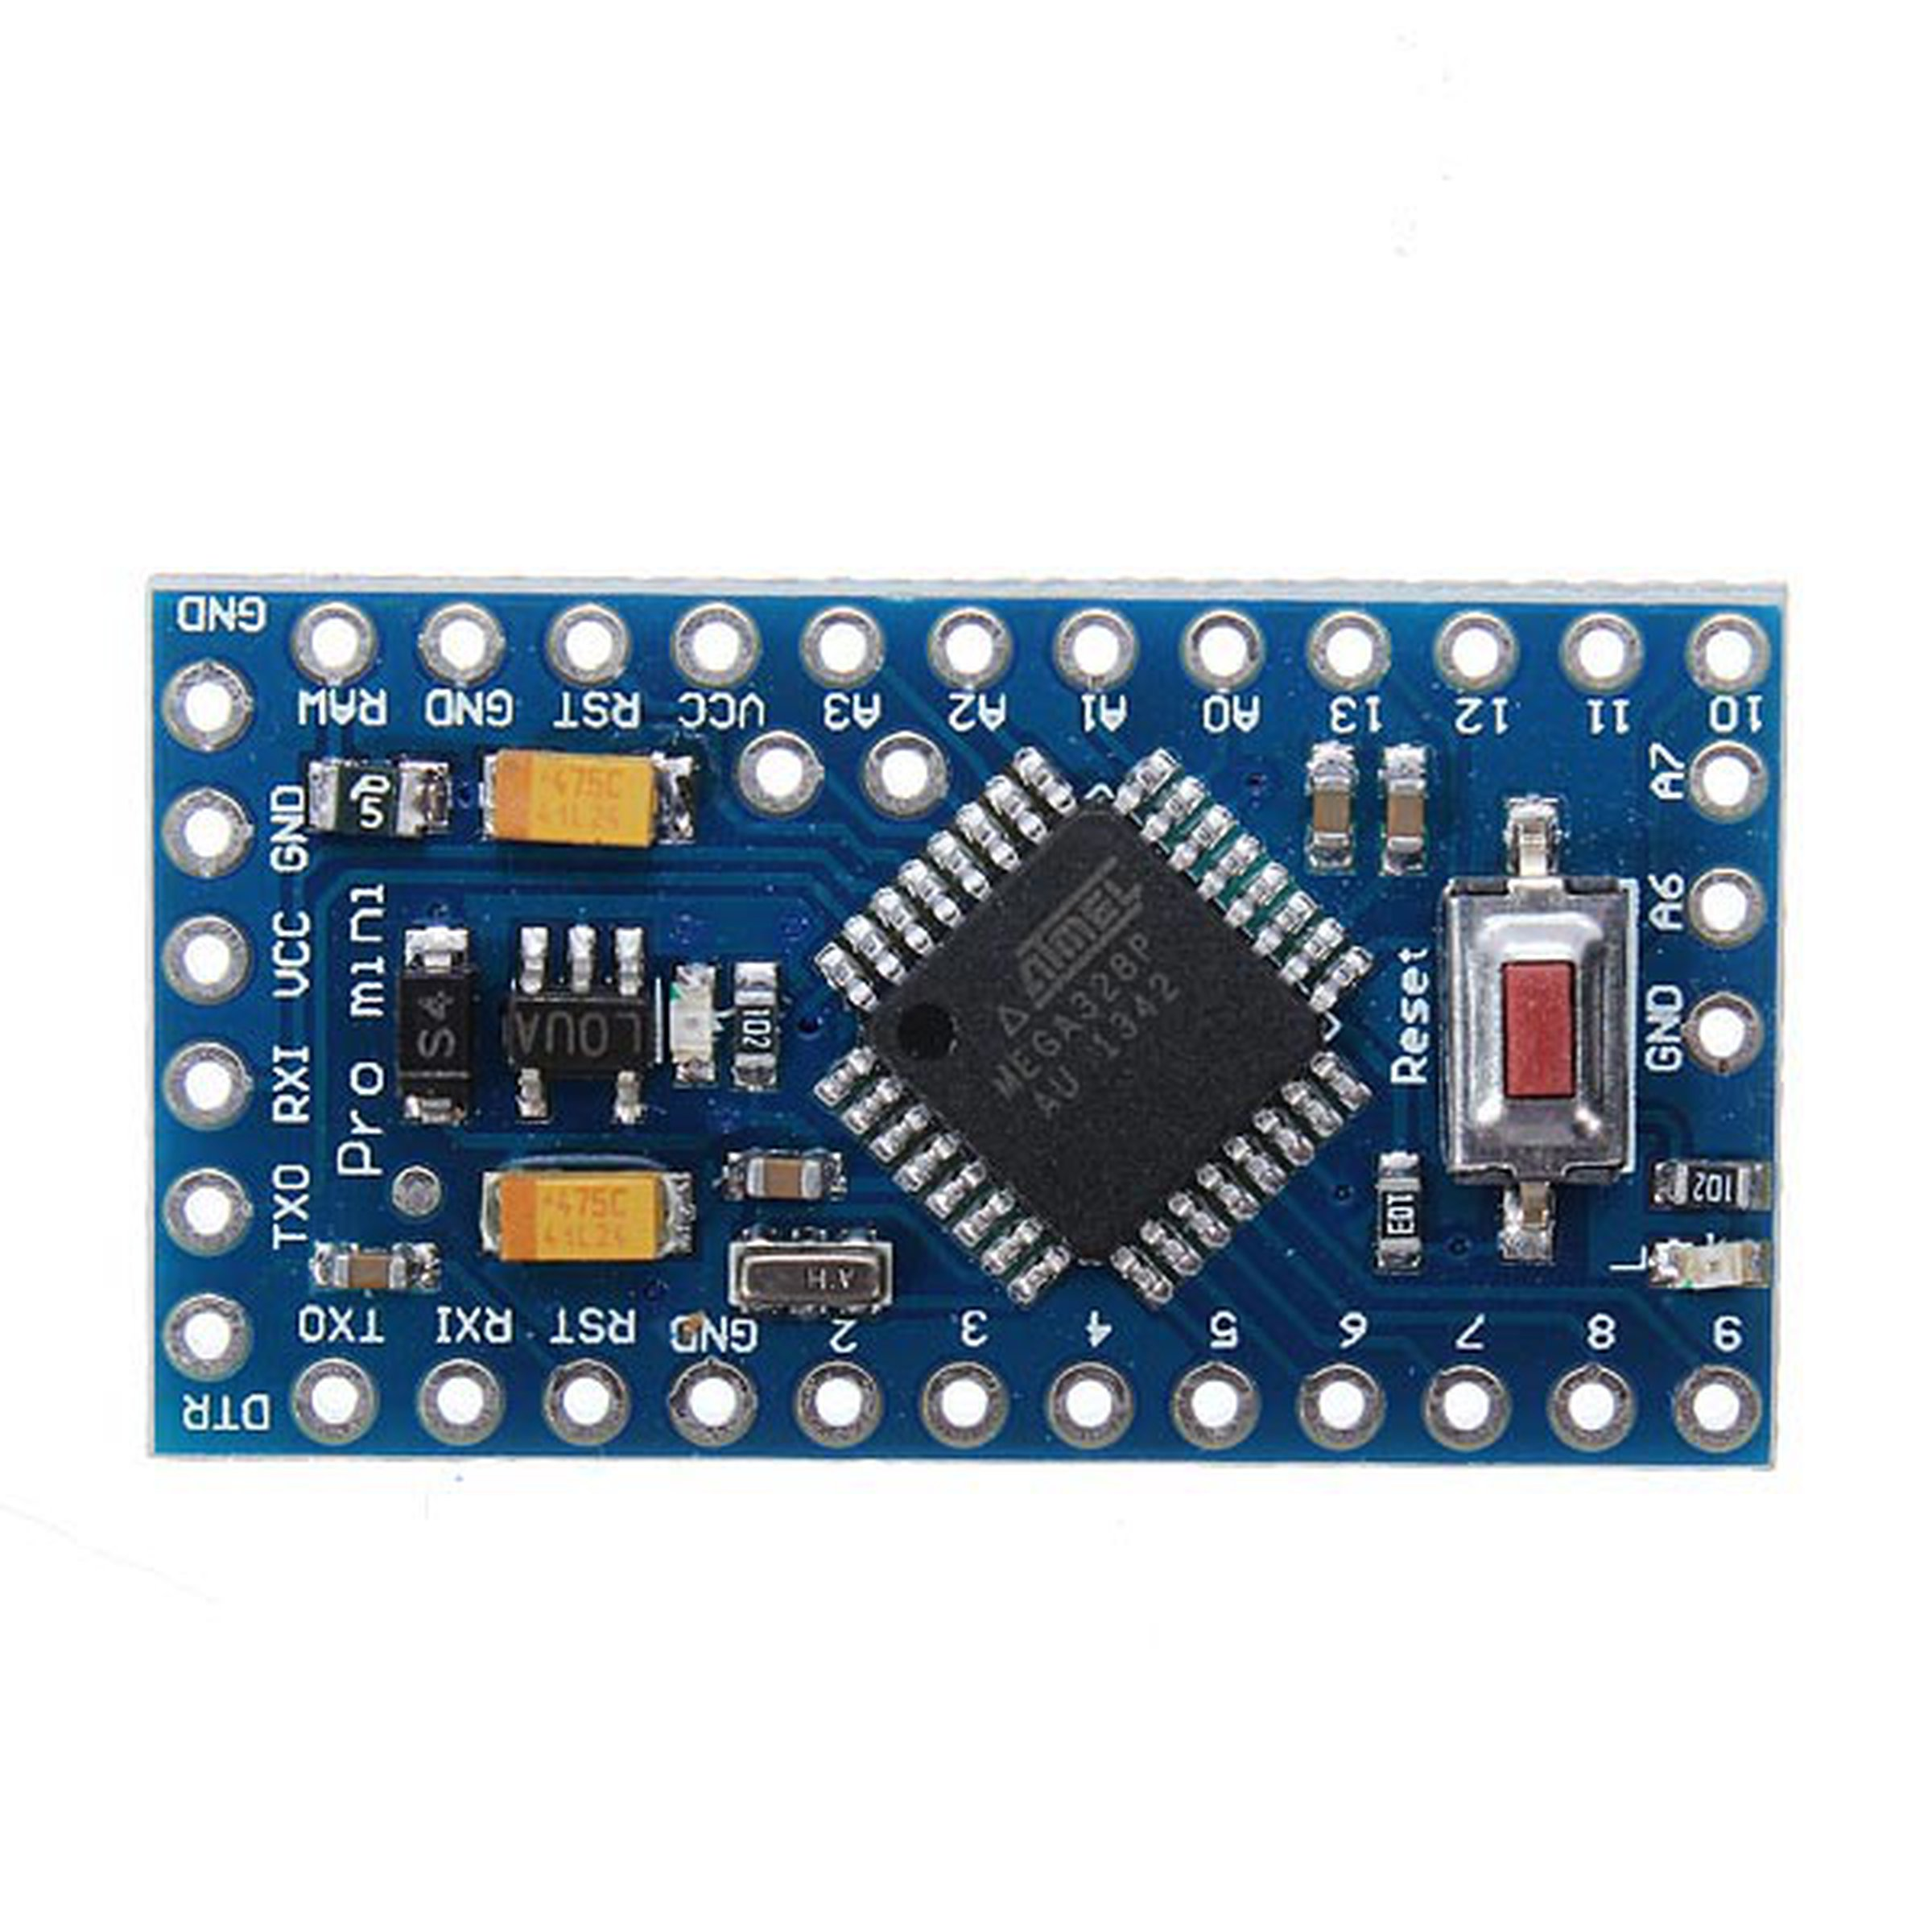 Arduino compatible nano size board from mmm on tindie